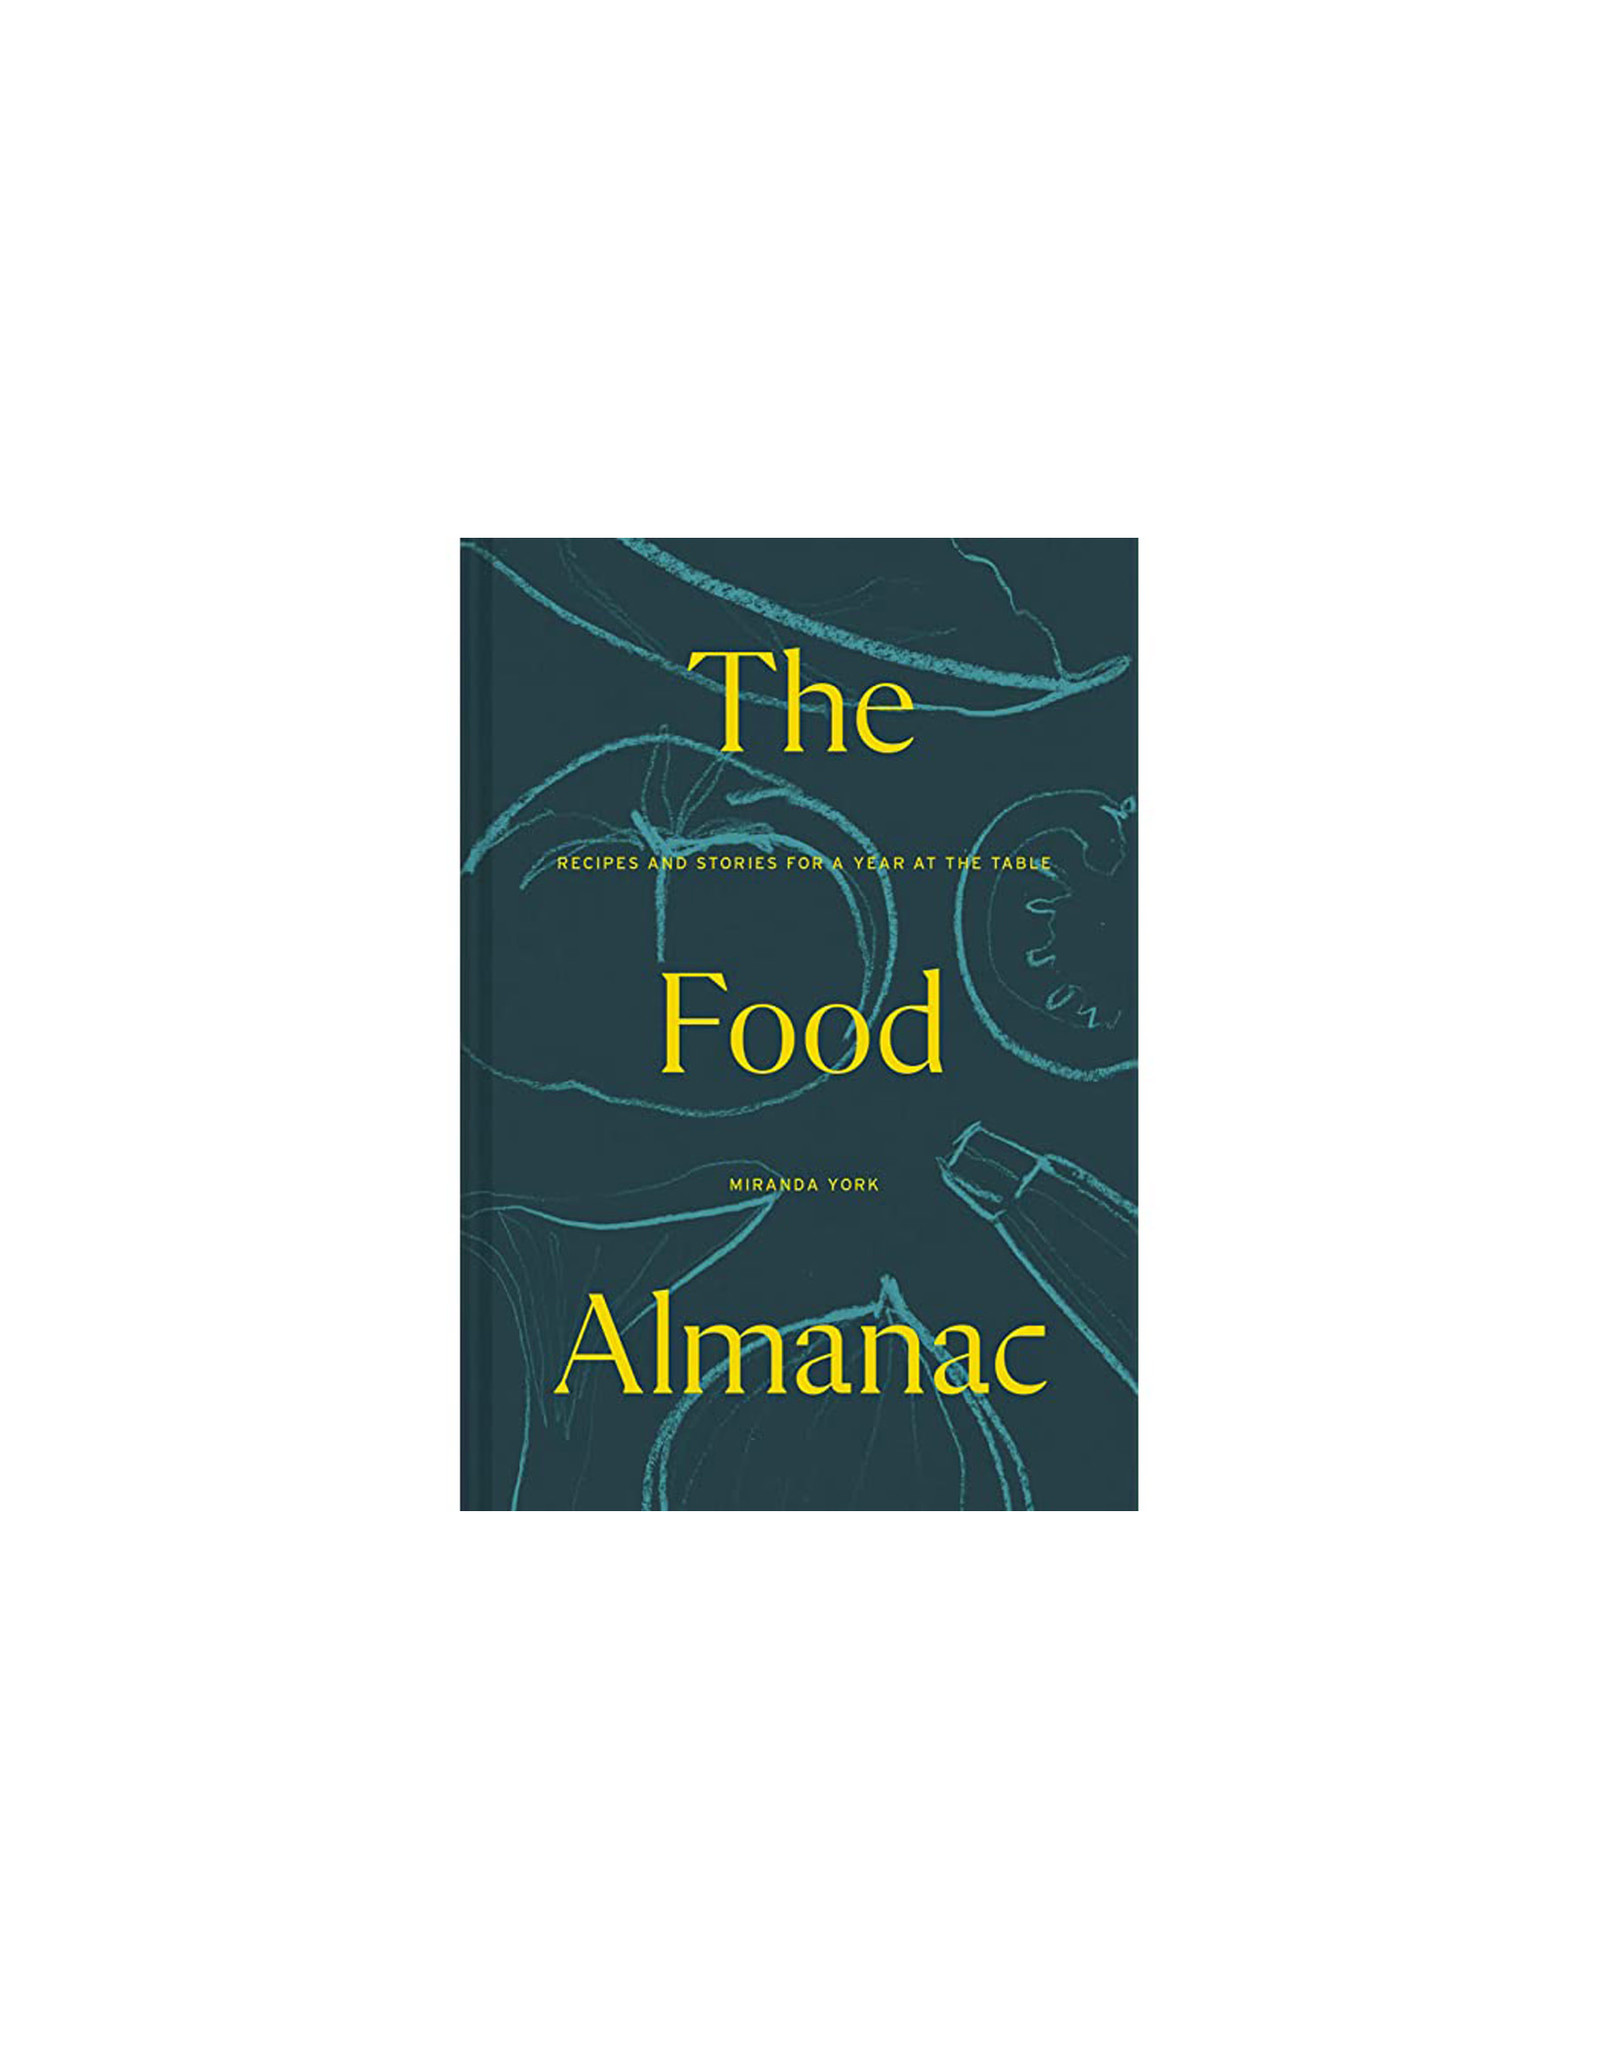 At the Table: The Food Almanac